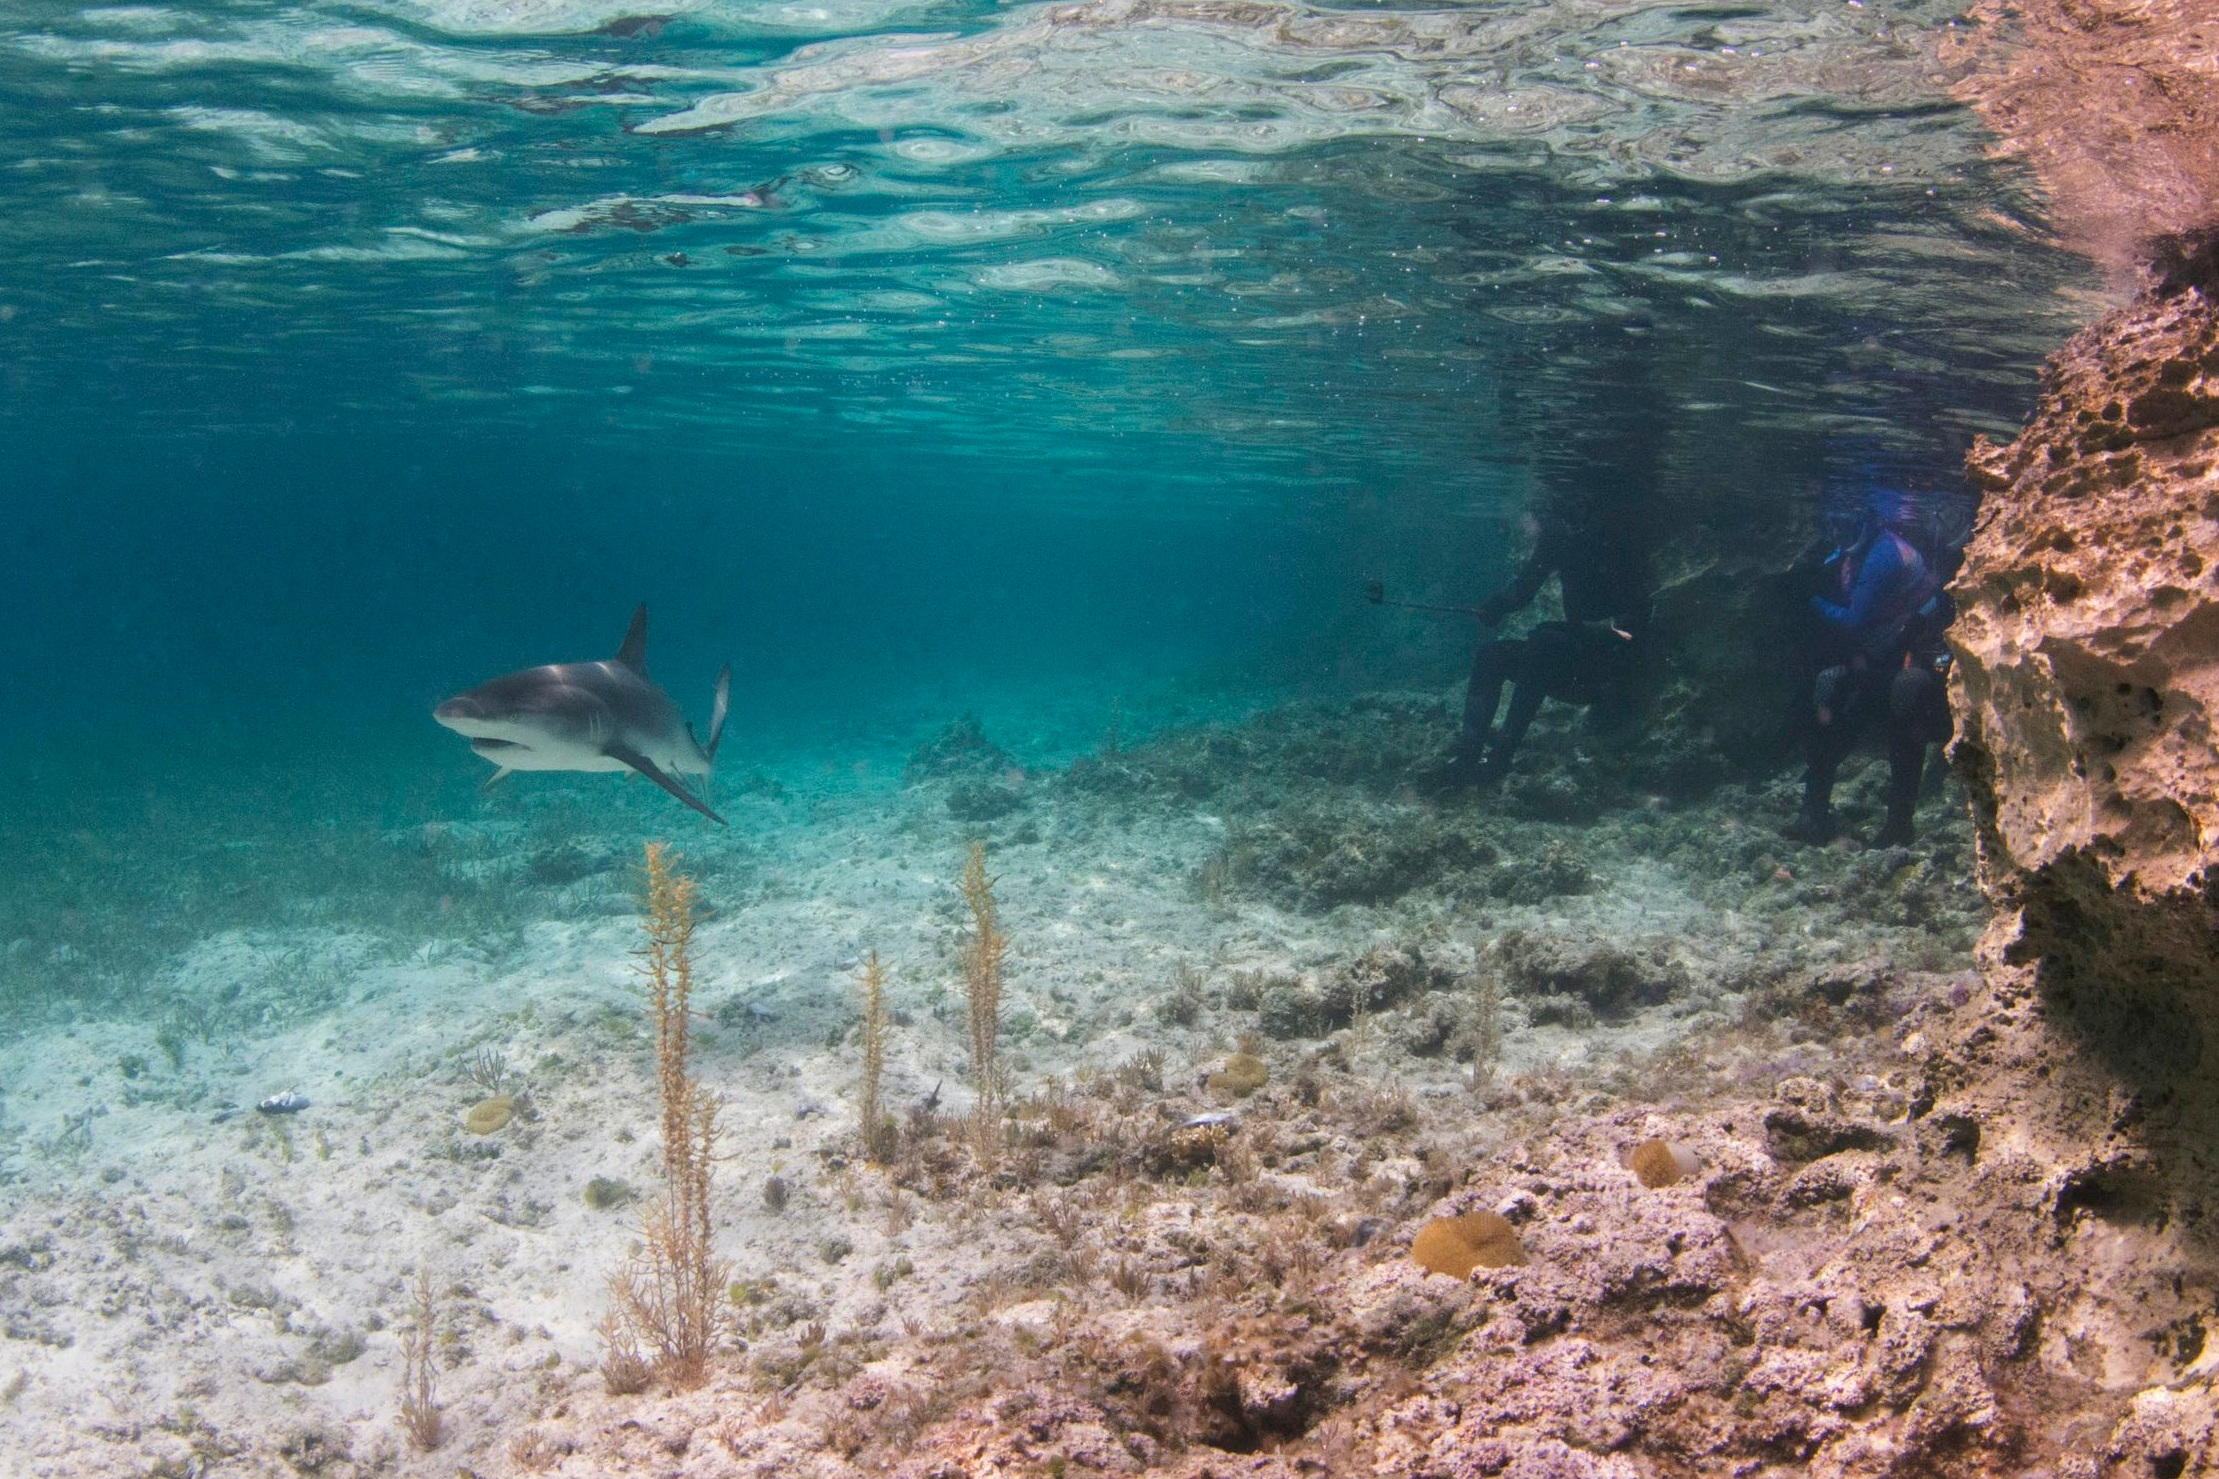 Guest enjoy some close passes by a Caribbean reef shark